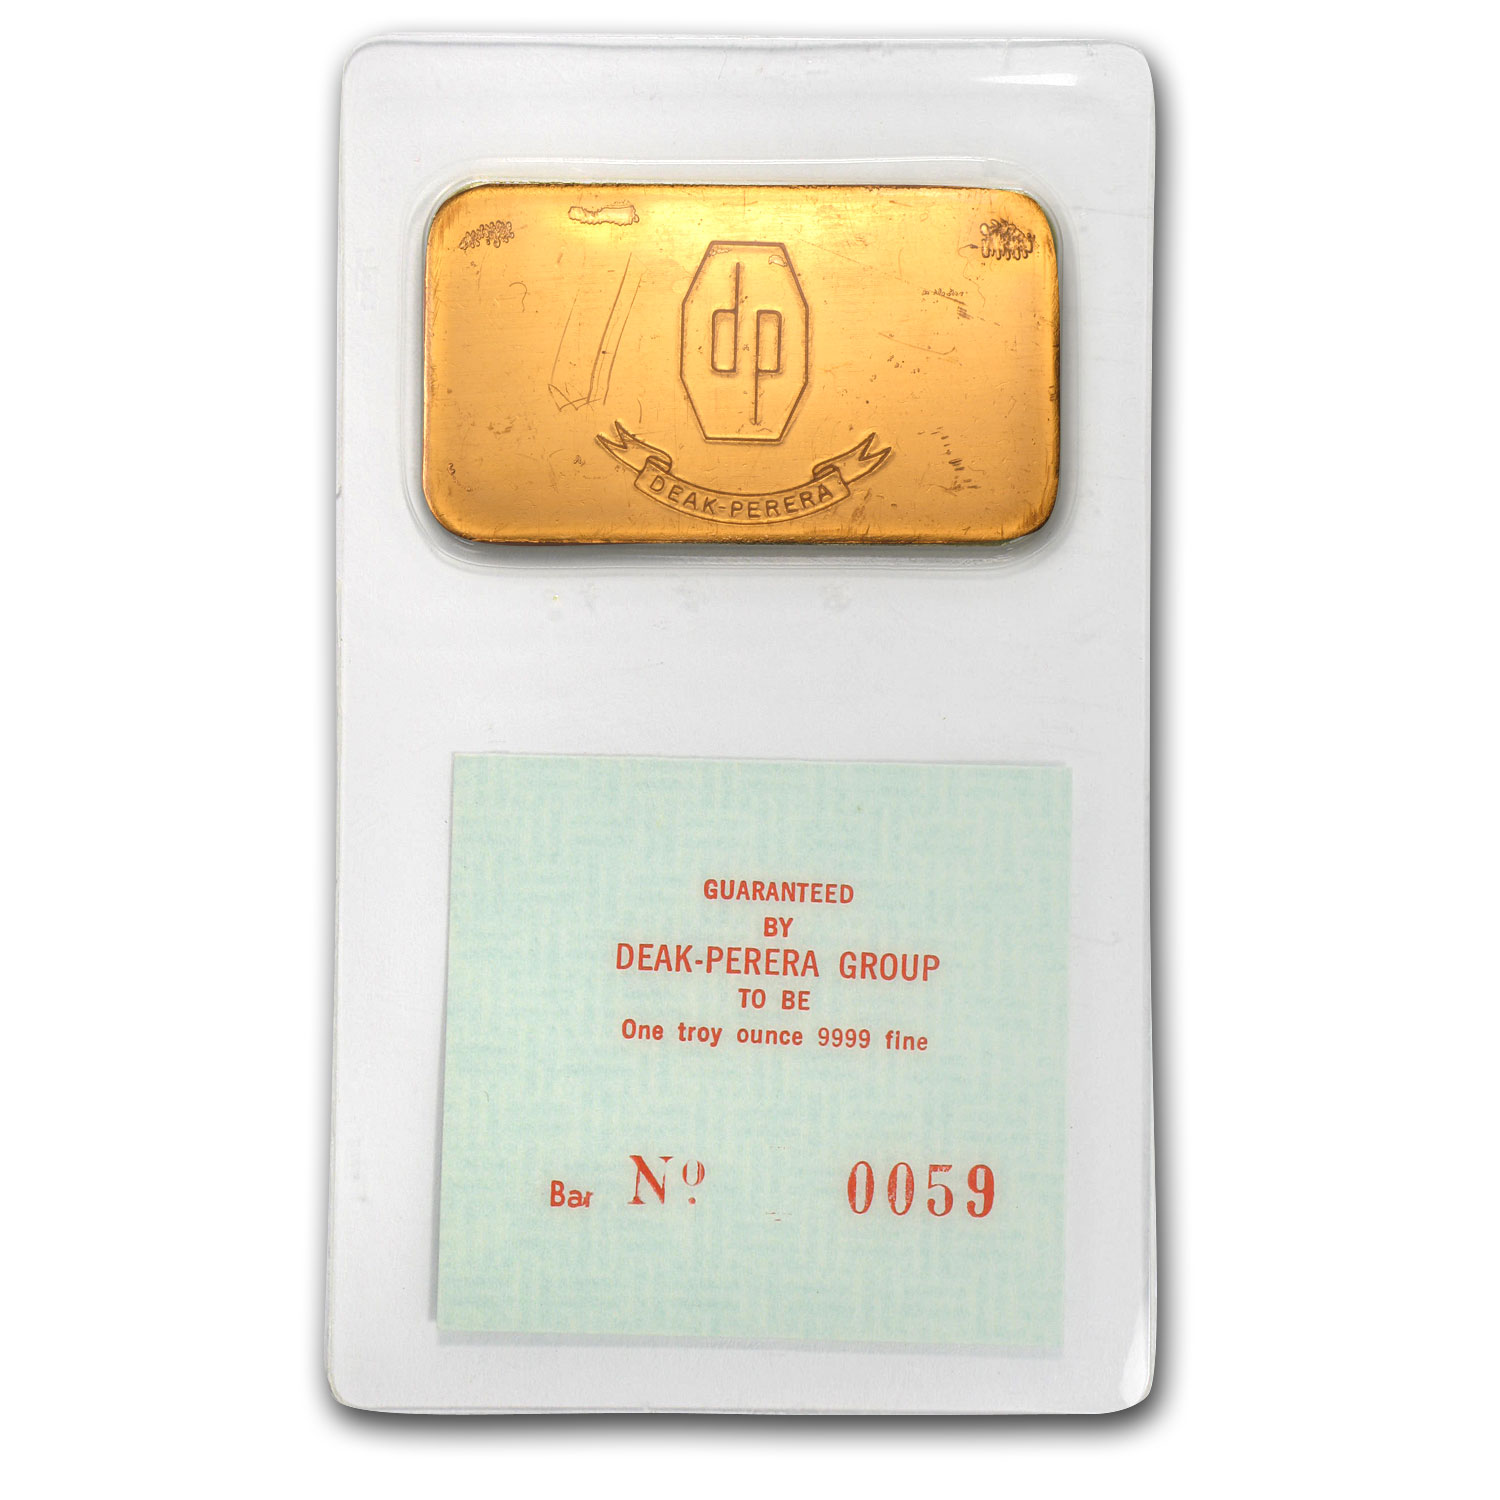 1 oz Gold Bar - Deak-Perera (Serial #0059, In Assay)